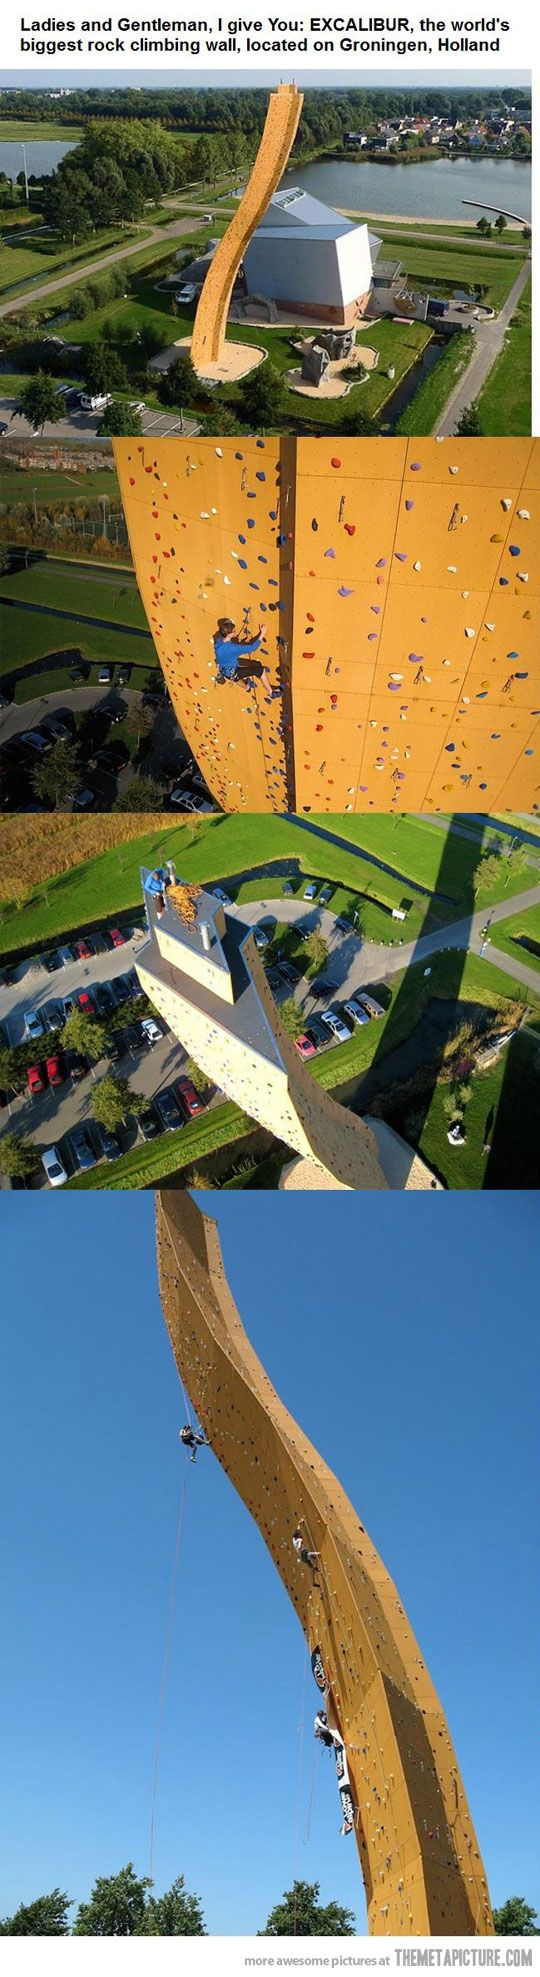 The world's biggest climbing wall